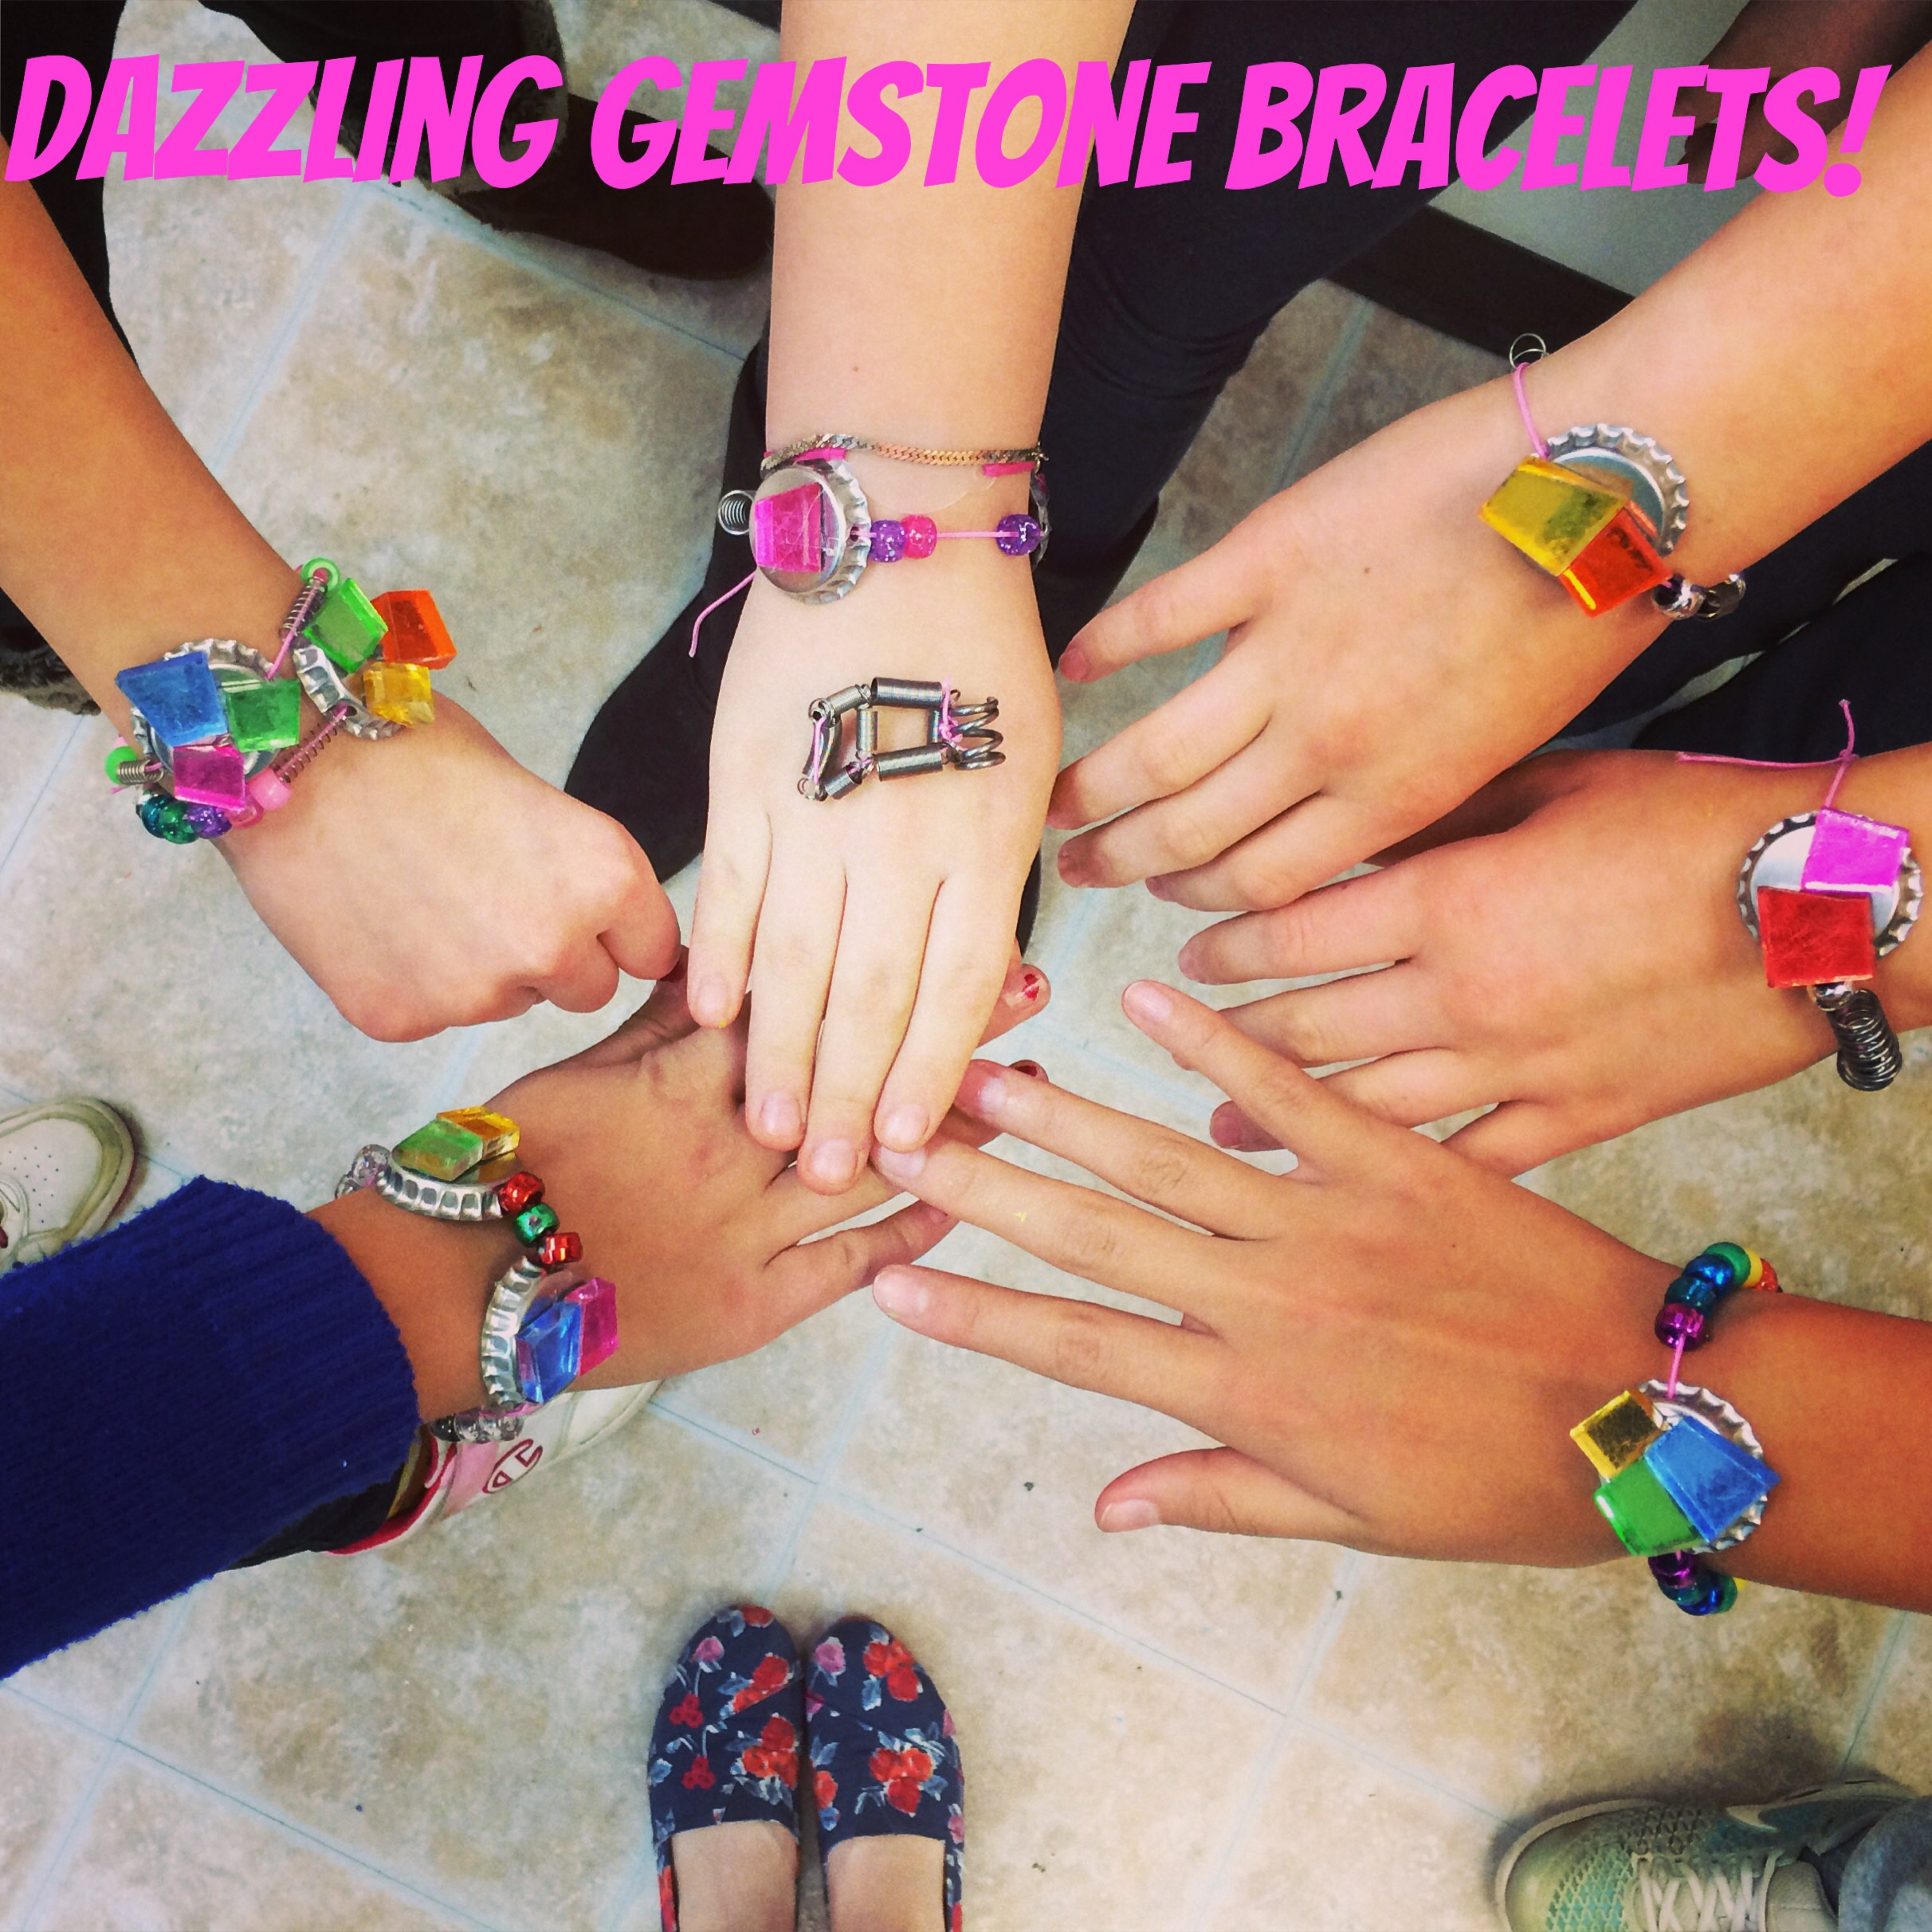 Cupcakes and lace diy girls gemstone bottlecap bracelet girl girl scout troop working towards earning your jeweler junior badge or do you just love making super cool jewelry cupcakesandlace solutioingenieria Choice Image